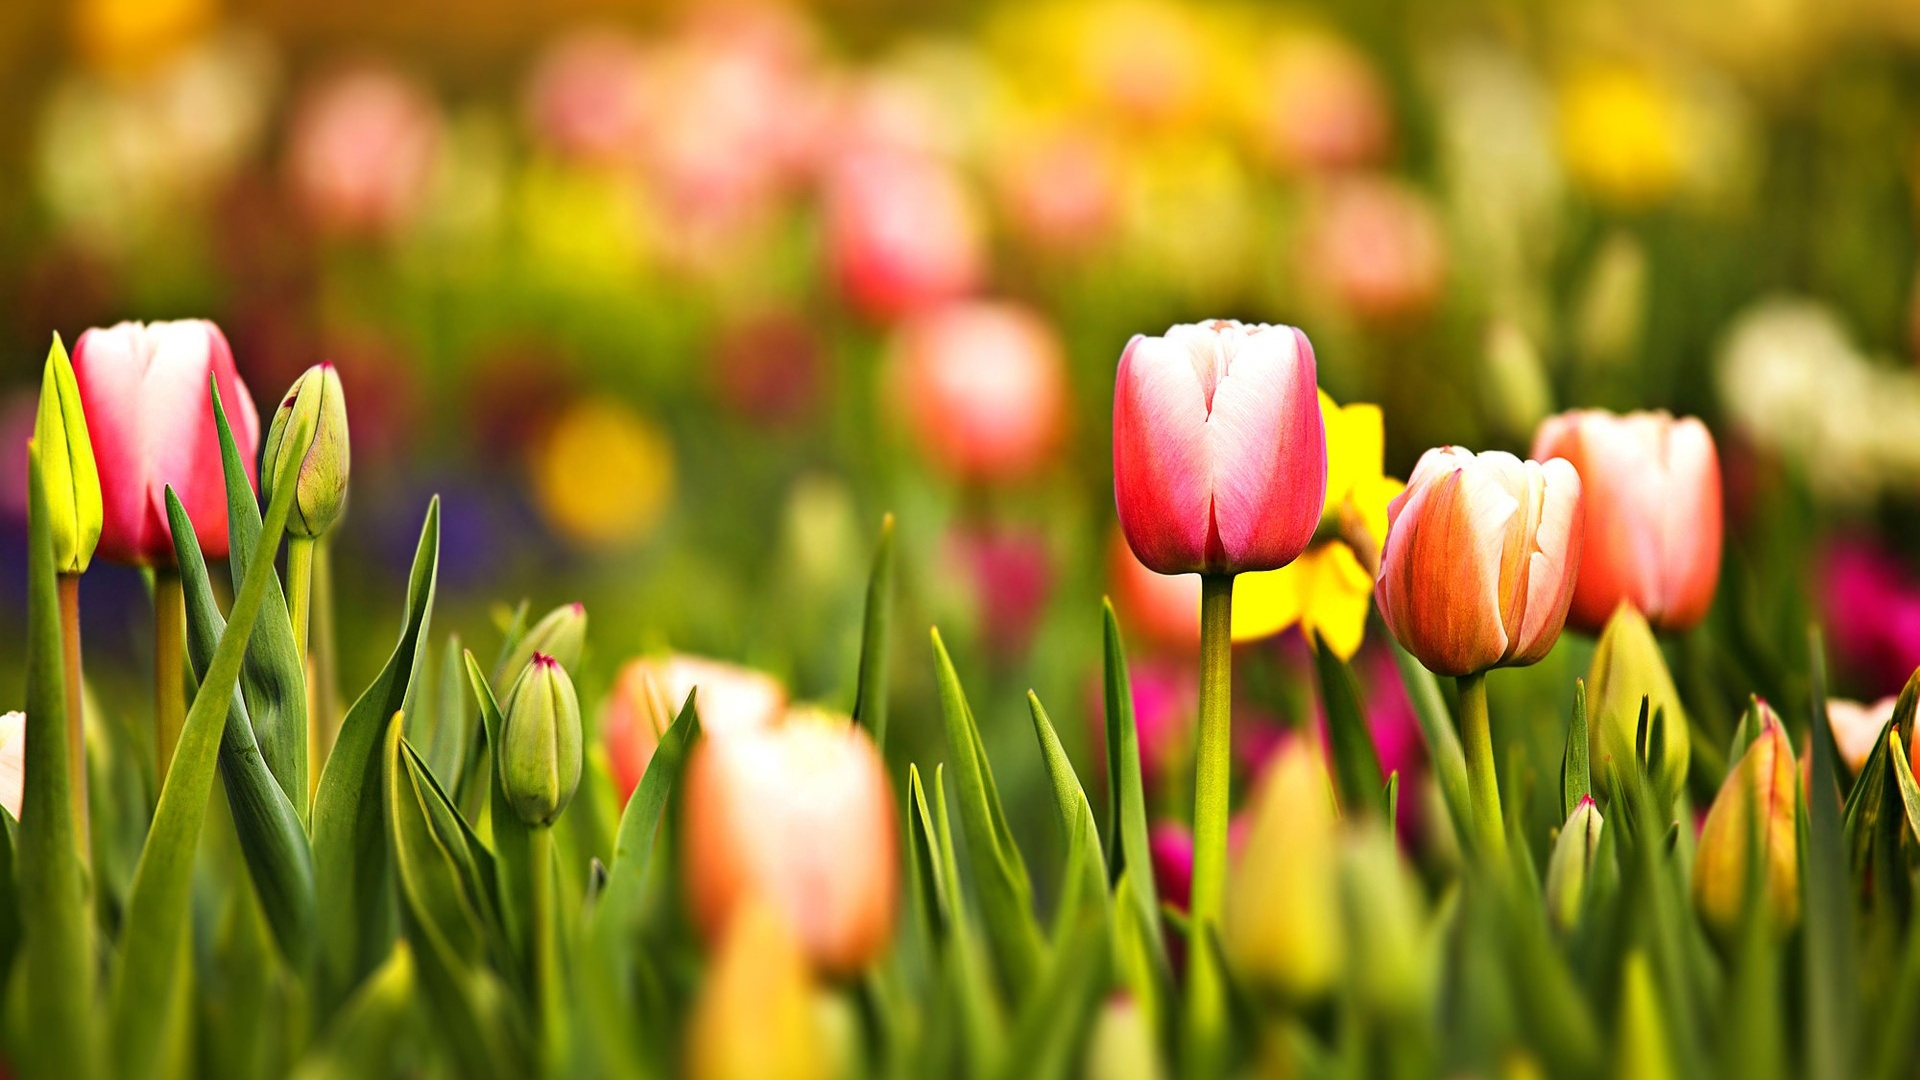 Spring Wallpapers HD download 1920x1080